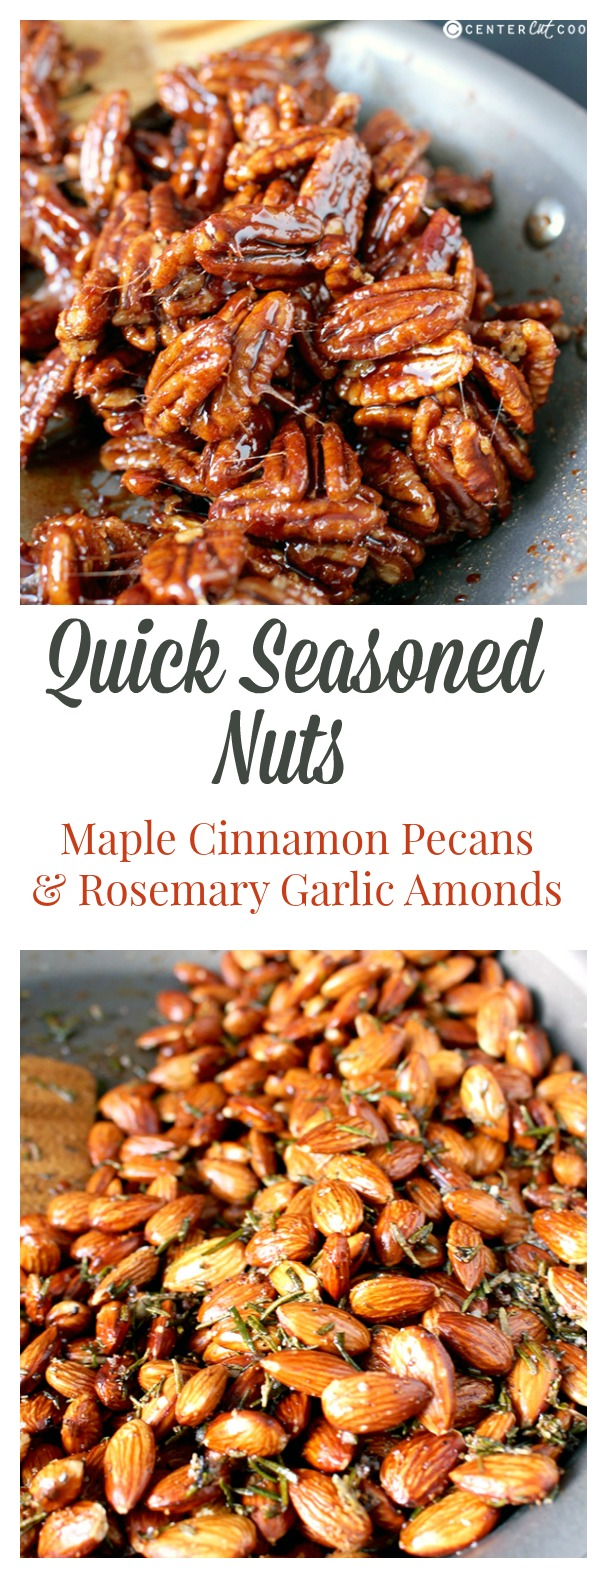 quick_seasoned_nuts_collage